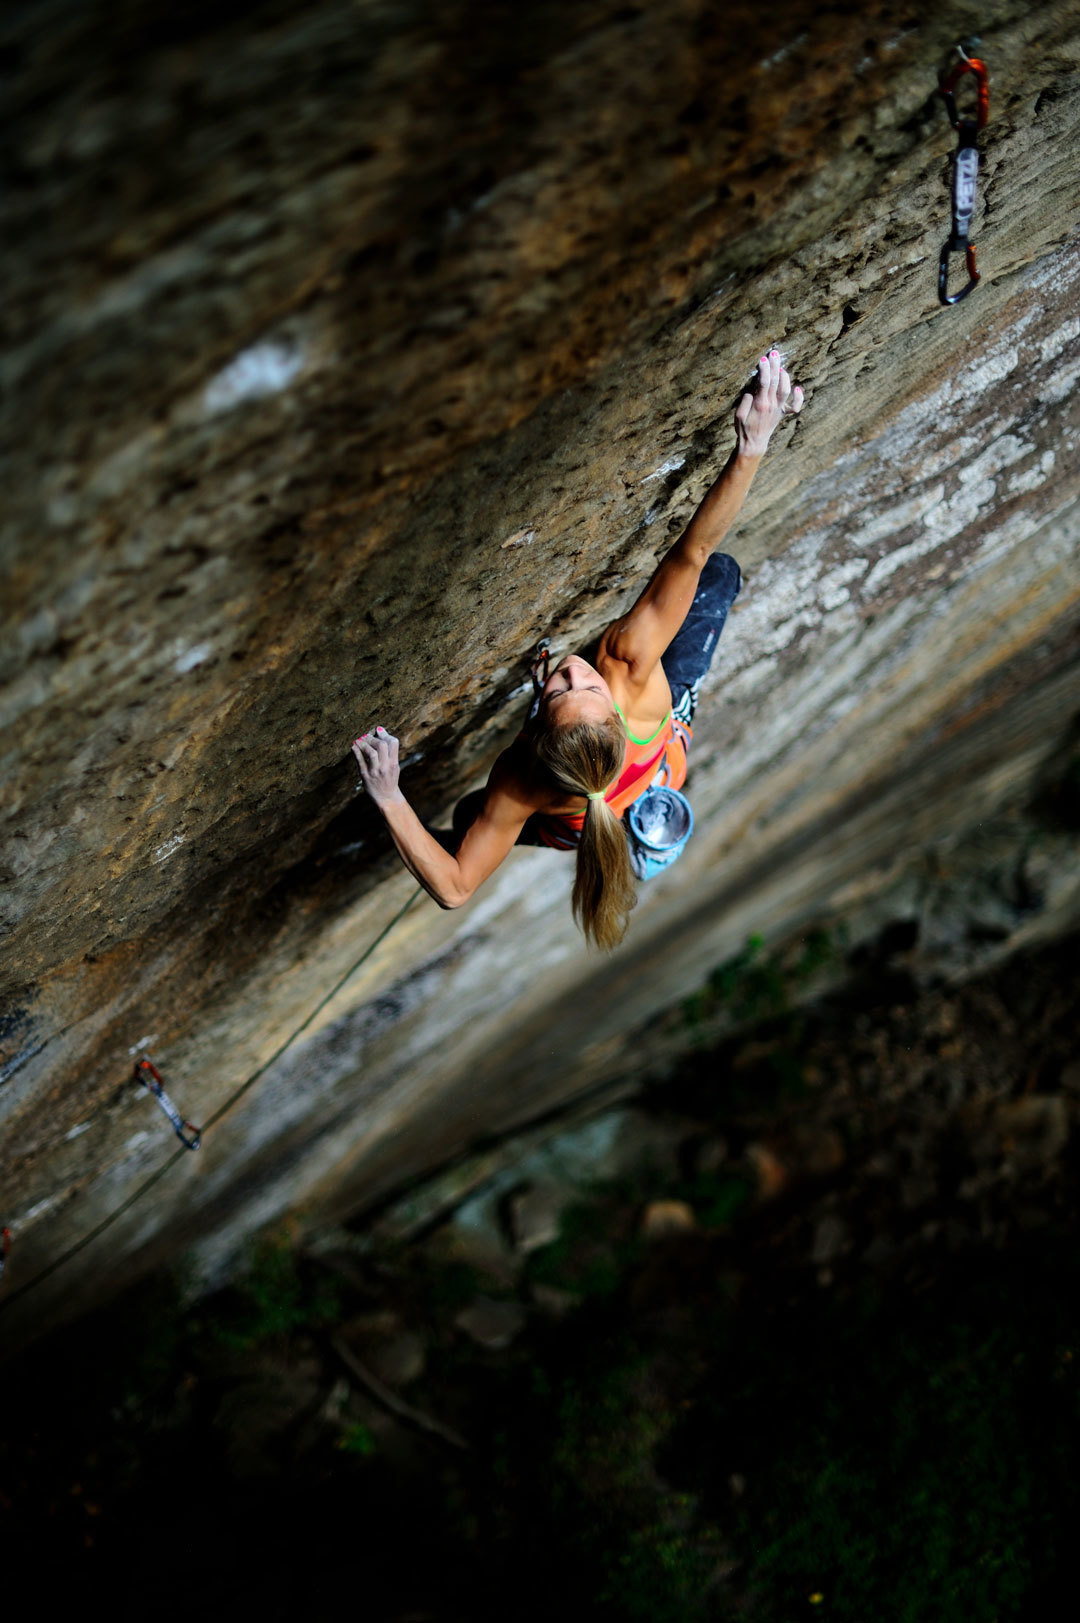 SASHA DIGIULIAN, Pure Imagination 5.14d Photo: KEITH LADZINSKI